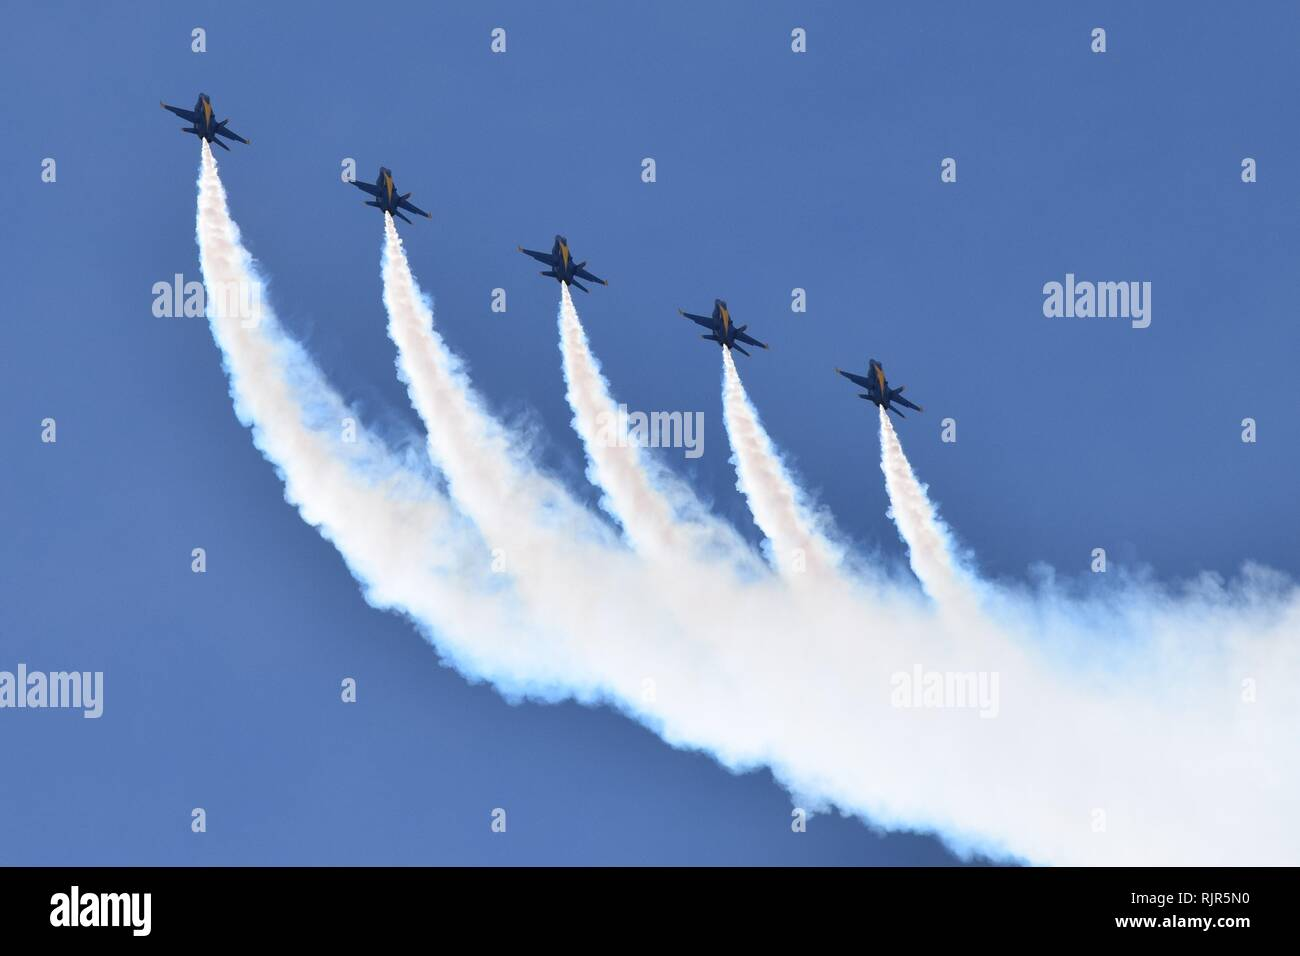 The US Navy demonstration team Blue Angels fly the F/A-18 Hornets in precise formation at the Luke Air Force Base airshow in Arizona in 2018. - Stock Image